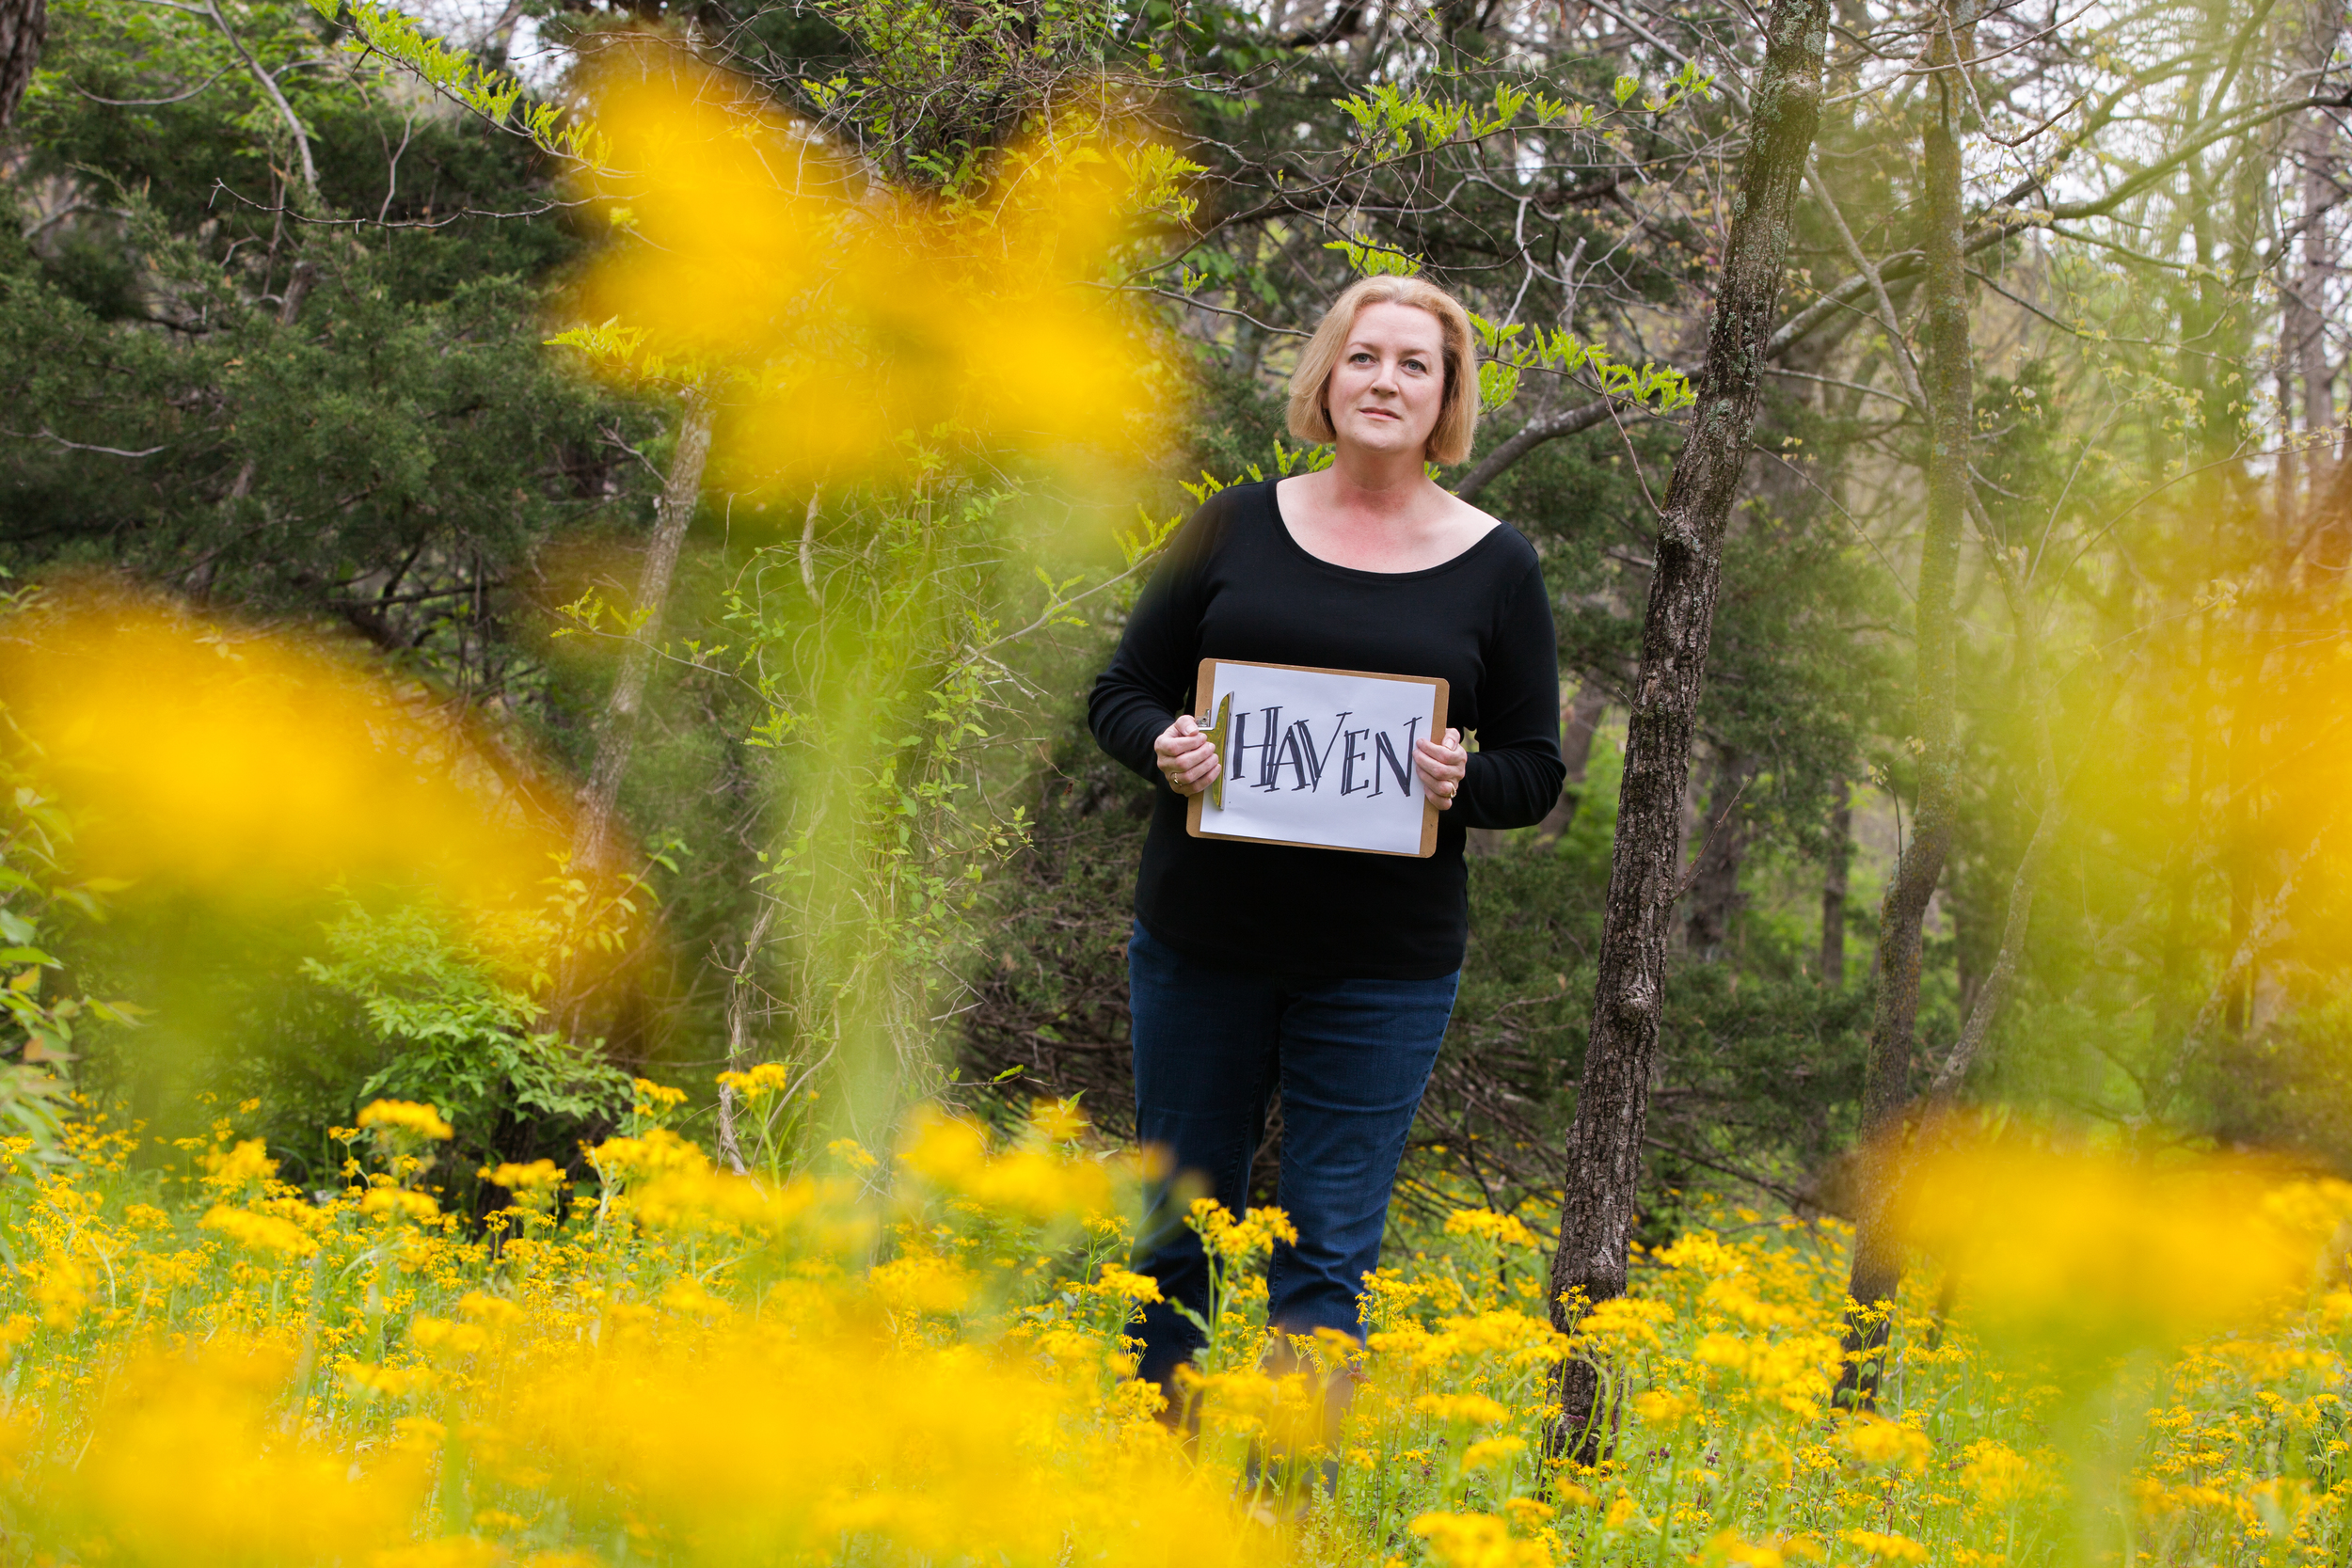 Woman holding a sign that says haven while standing in a field of flowers.